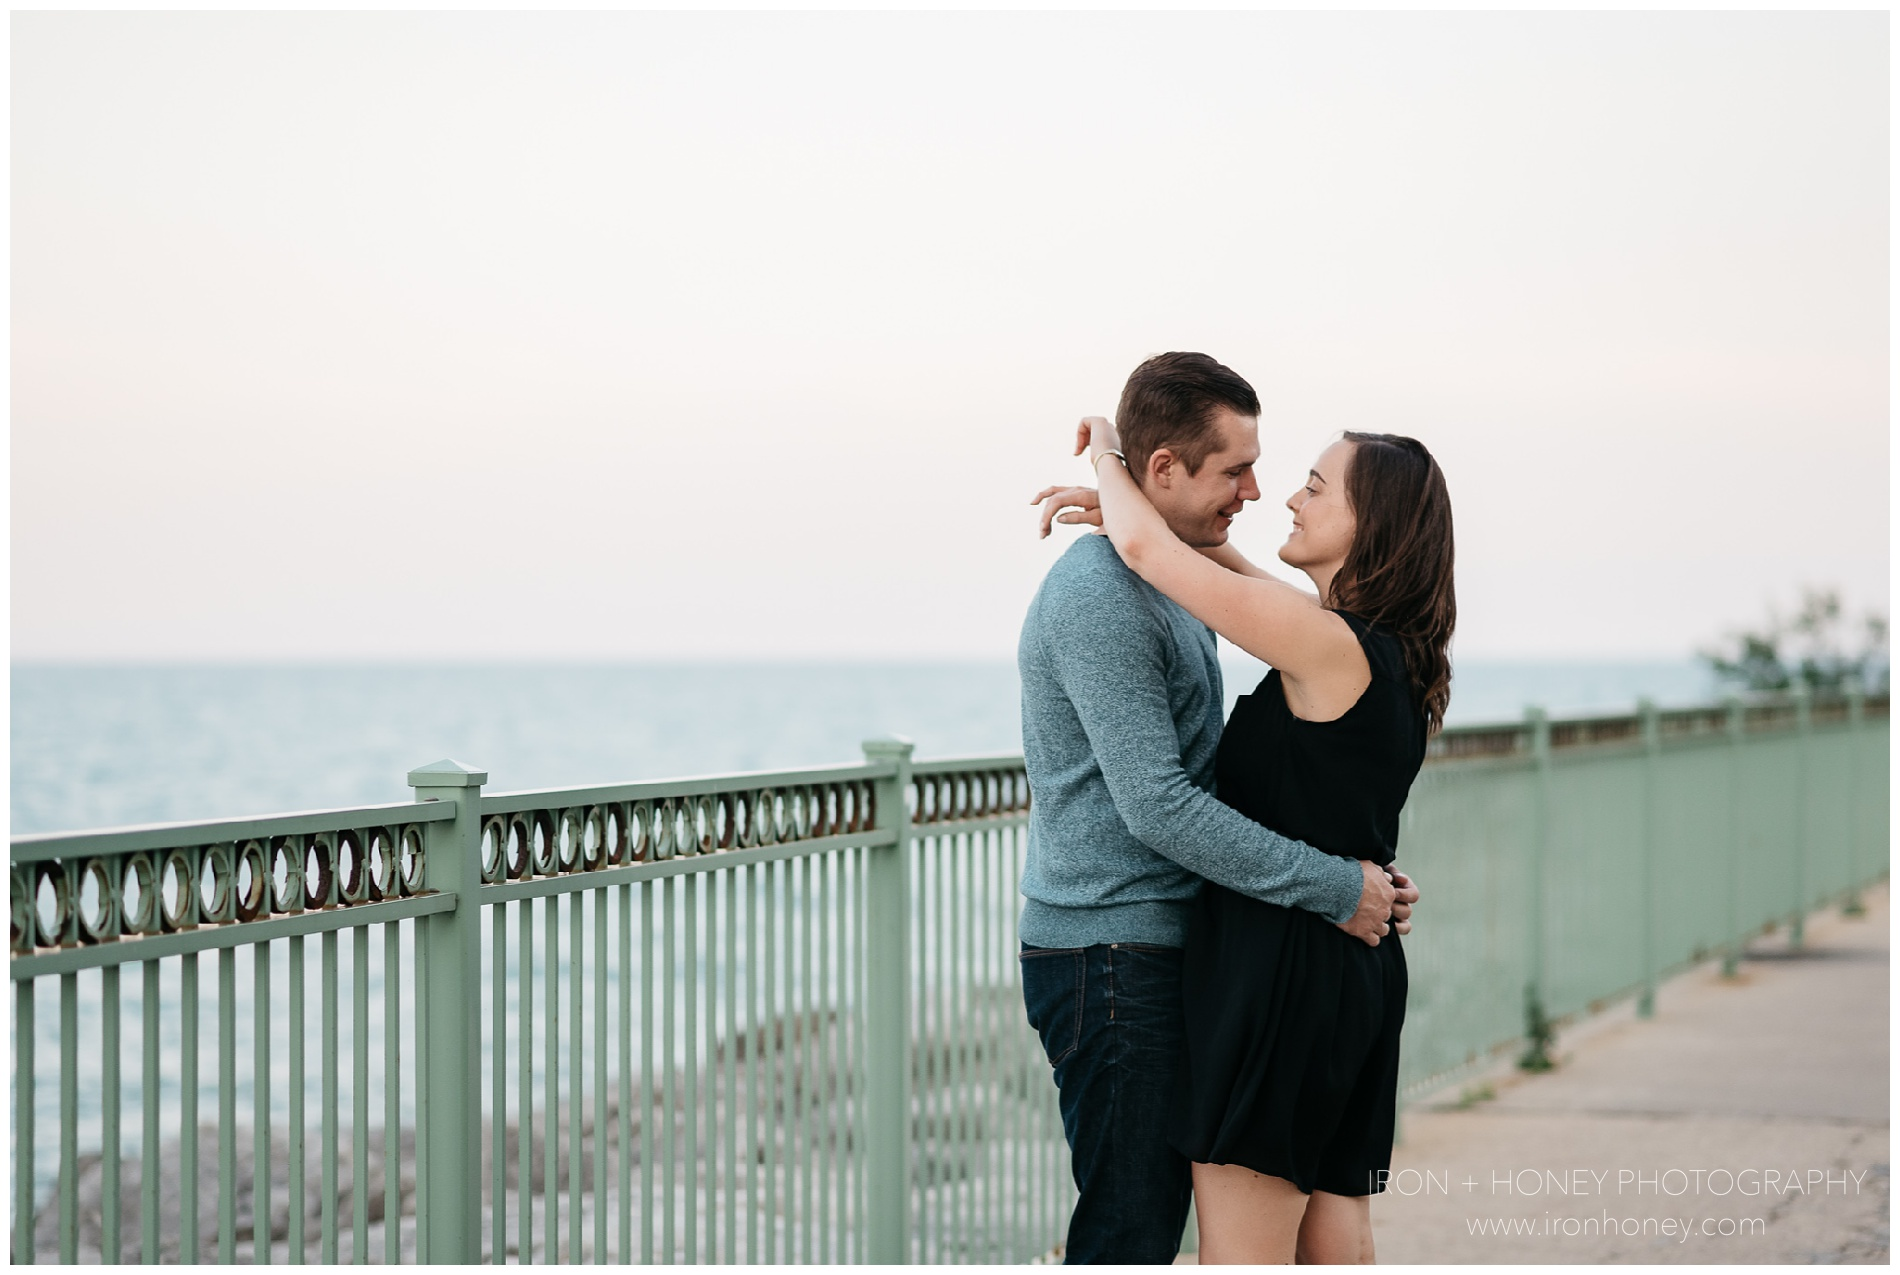 loyola university, loyola, chicago, chicago engagement photographer, chicago wedding photographer, chicago elopement photographer, lake michigan, engagement photos, lifestyle photographer